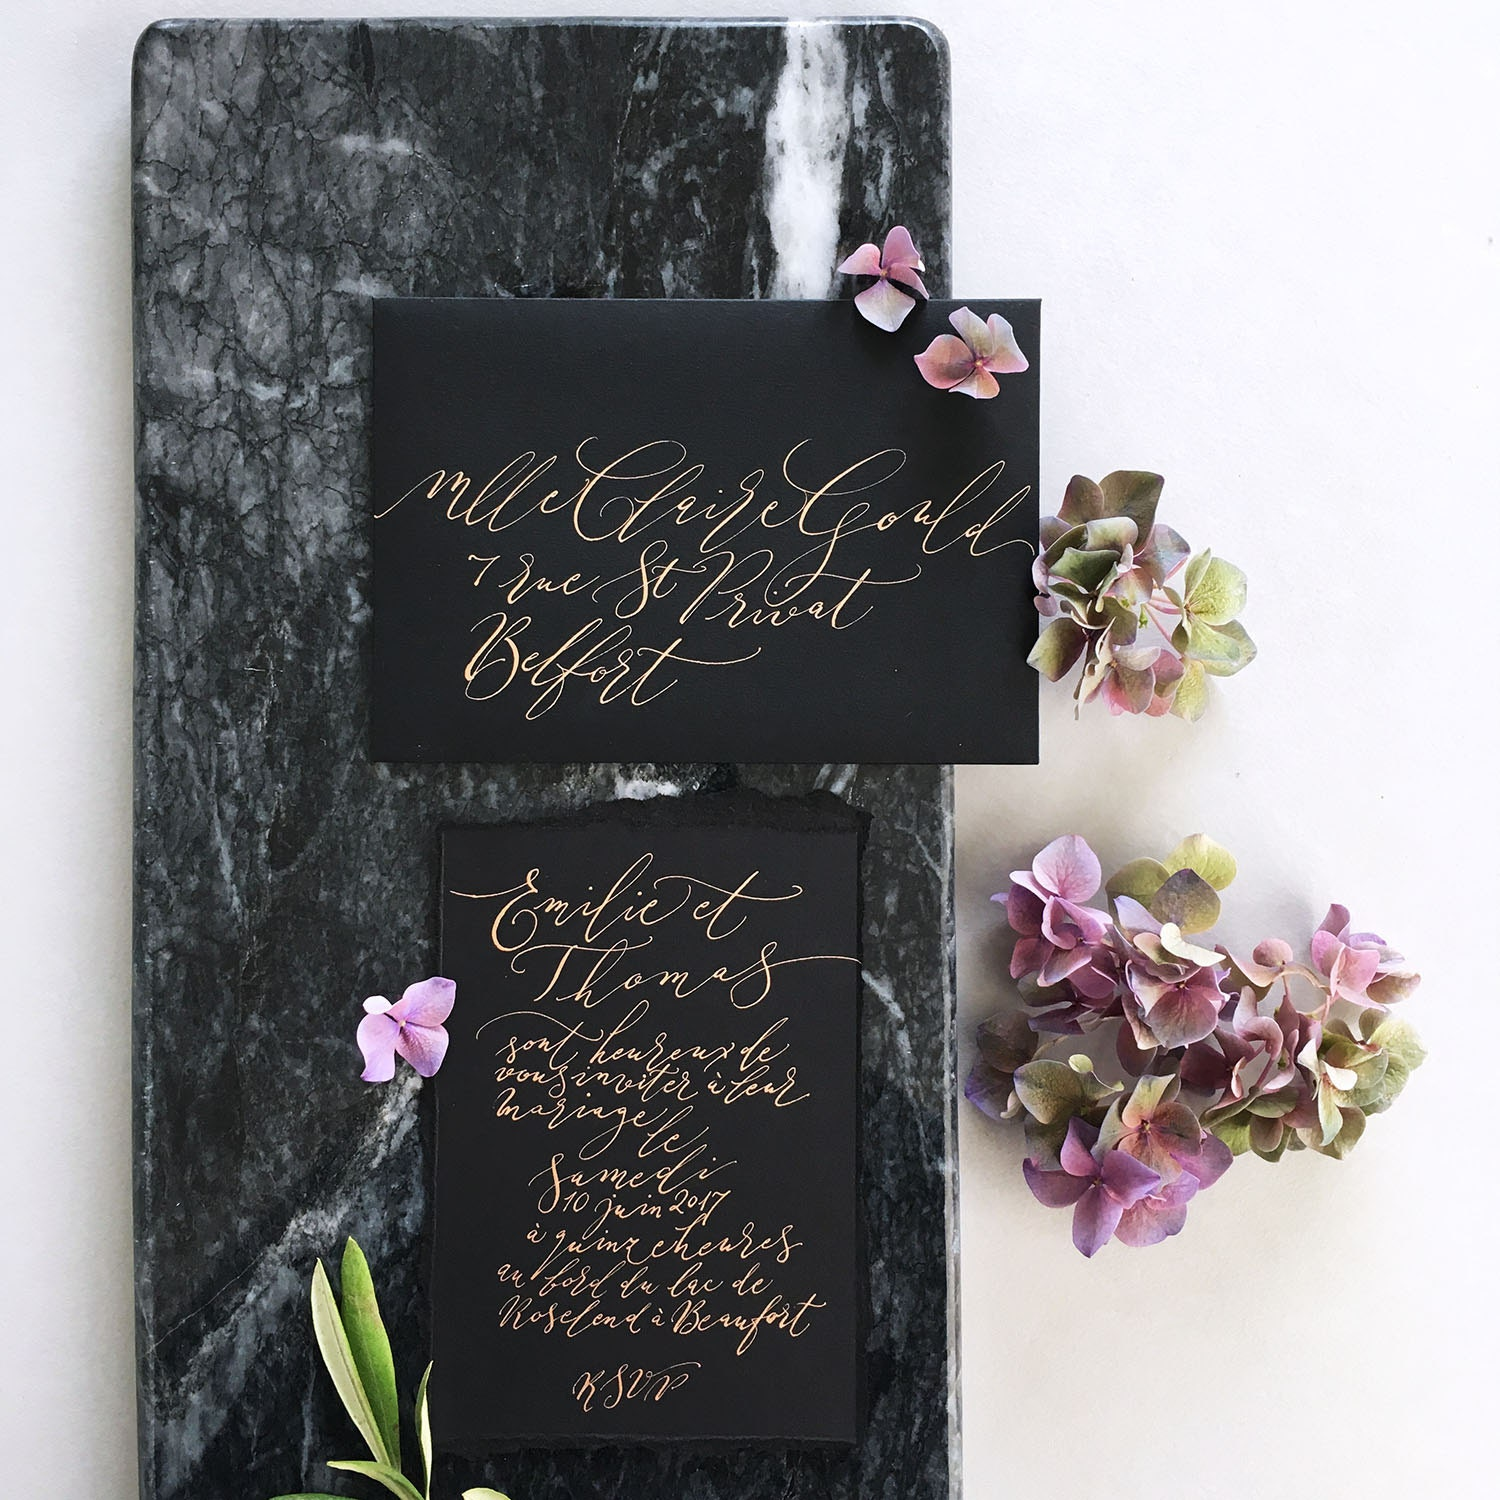 exquisite modern calligraphy lettering with a marble backdrop By Moon and Tide